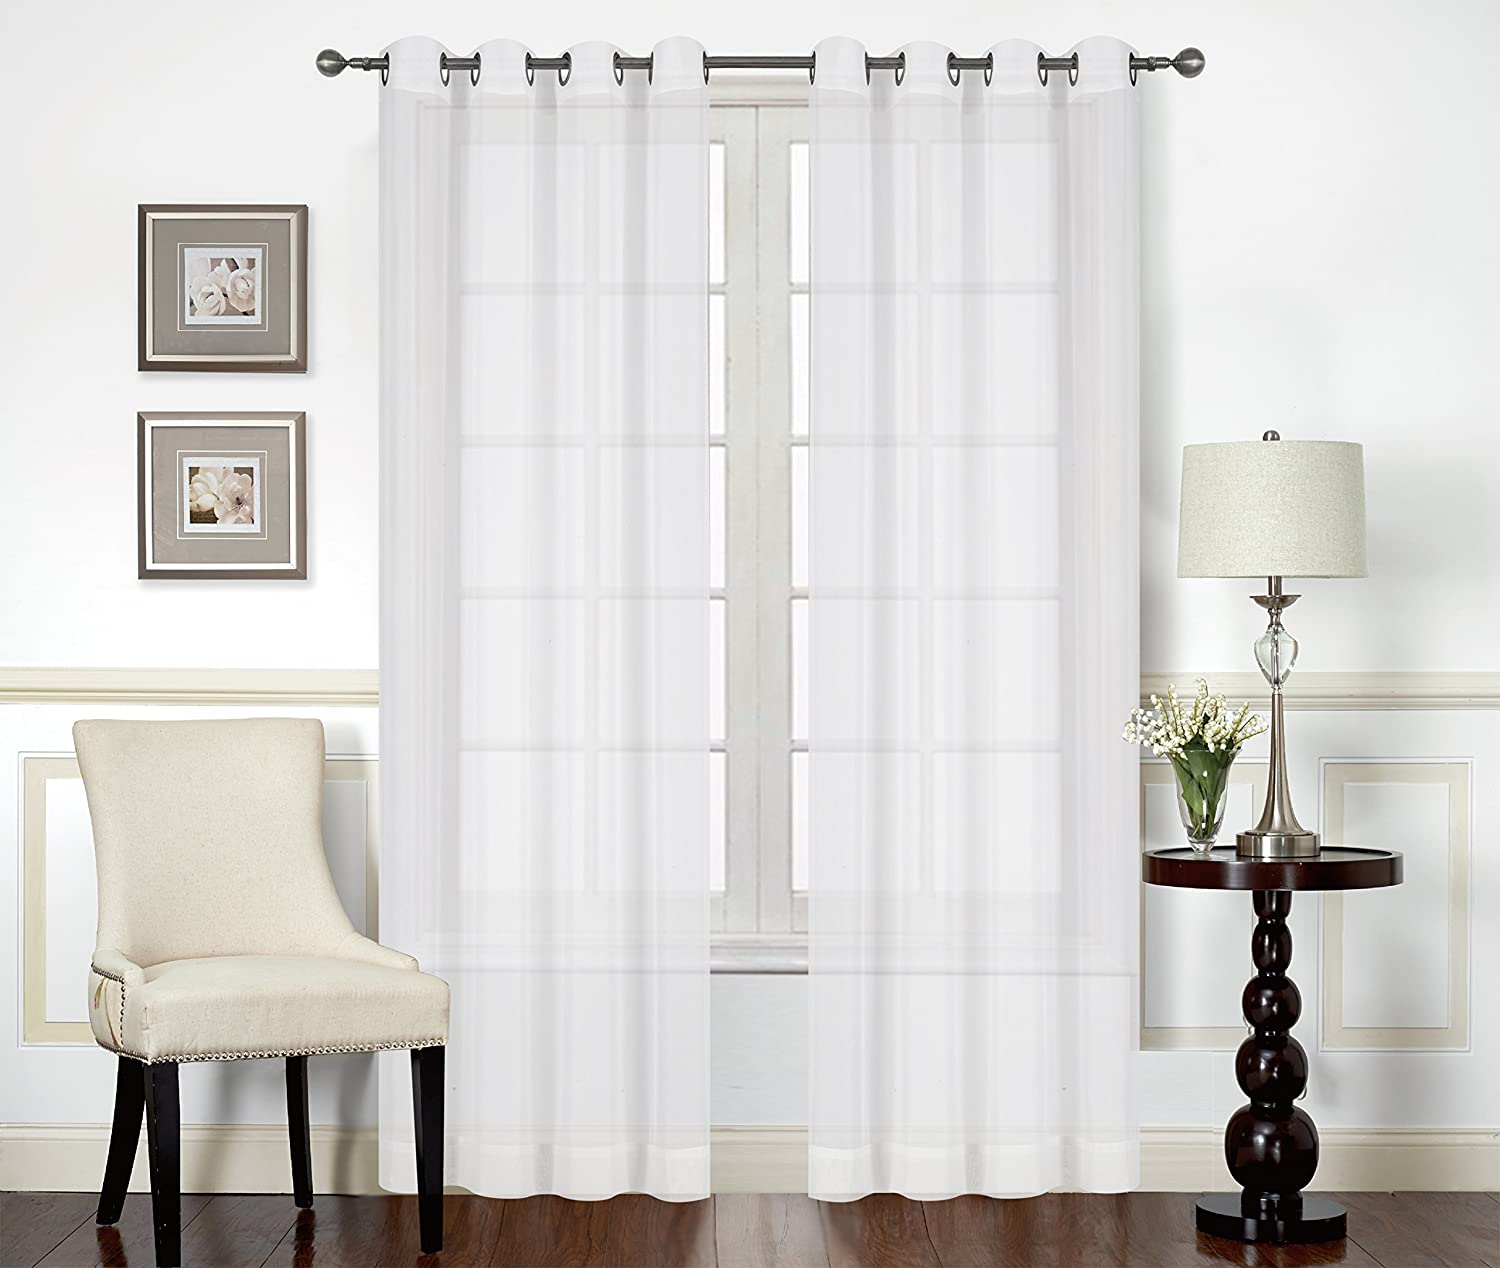 Premium White Sheer Curtains Sheer Voile White Luxurious High Thread Window Grommet Curtains